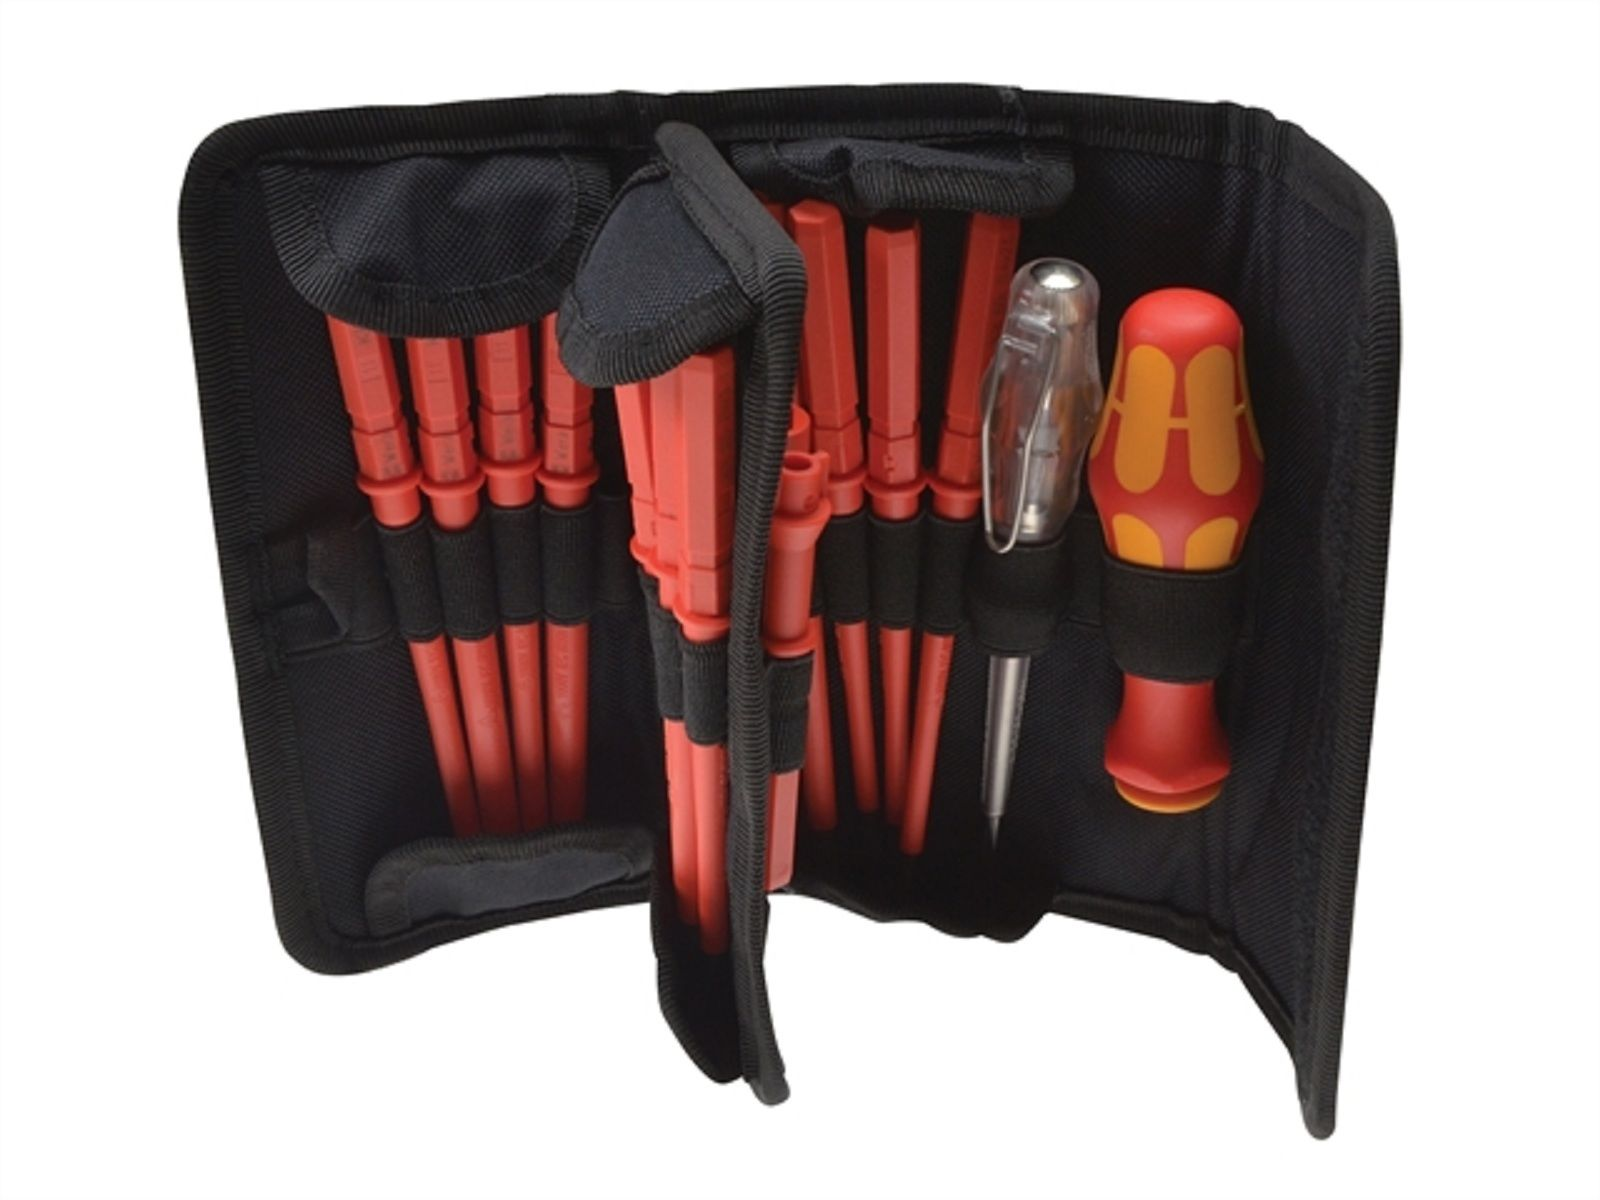 wera 003471 vde 18 piece screwdriver set. Black Bedroom Furniture Sets. Home Design Ideas